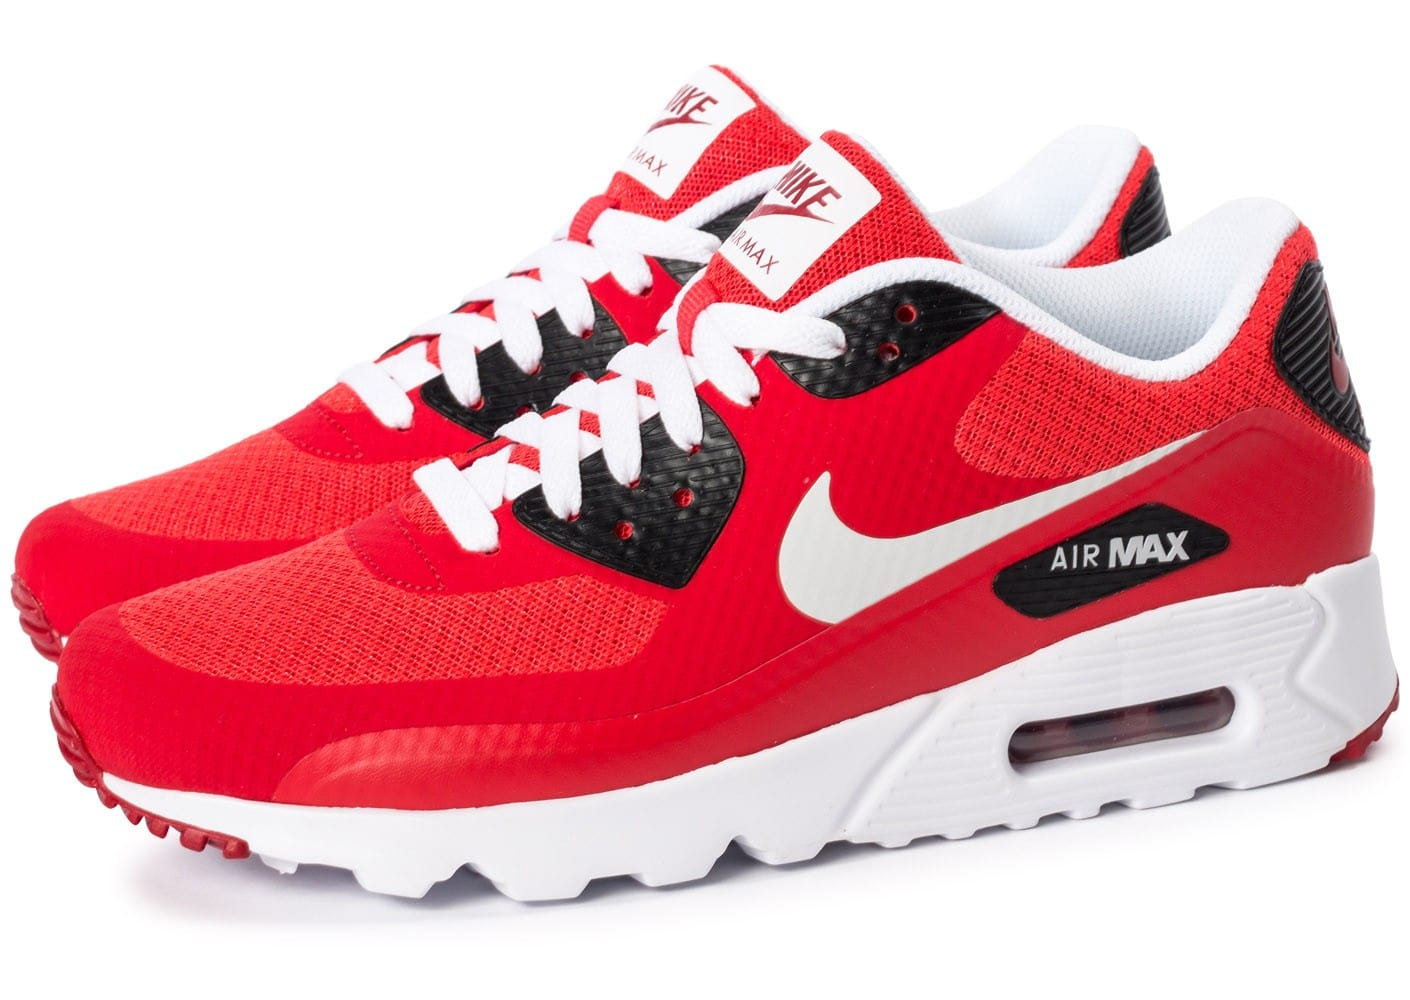 wholesale dealer fbe75 1fc7c nike air max 90 essential rouge, Cliquez pour zoomer Chaussures Nike Air  Max 90 Ultra